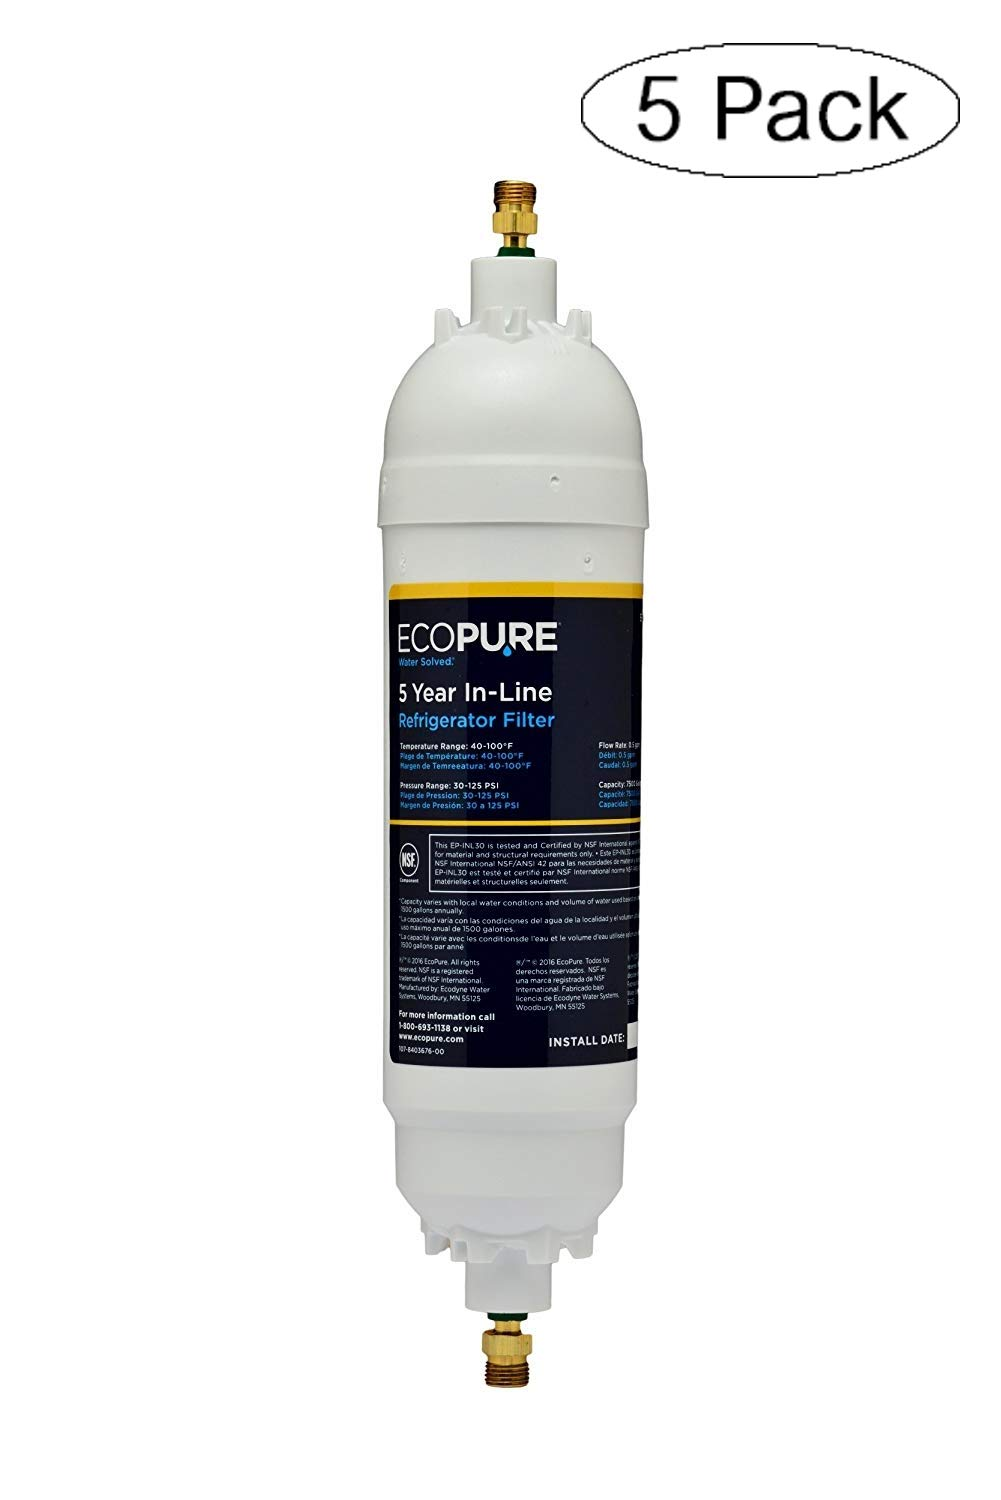 """EcoPure EPINL30 5 Year in-Line Refrigerator Filter-Universal Includes Both 1/4"""" Compression and Push to Connect Fittings (Fivе Расk)"""